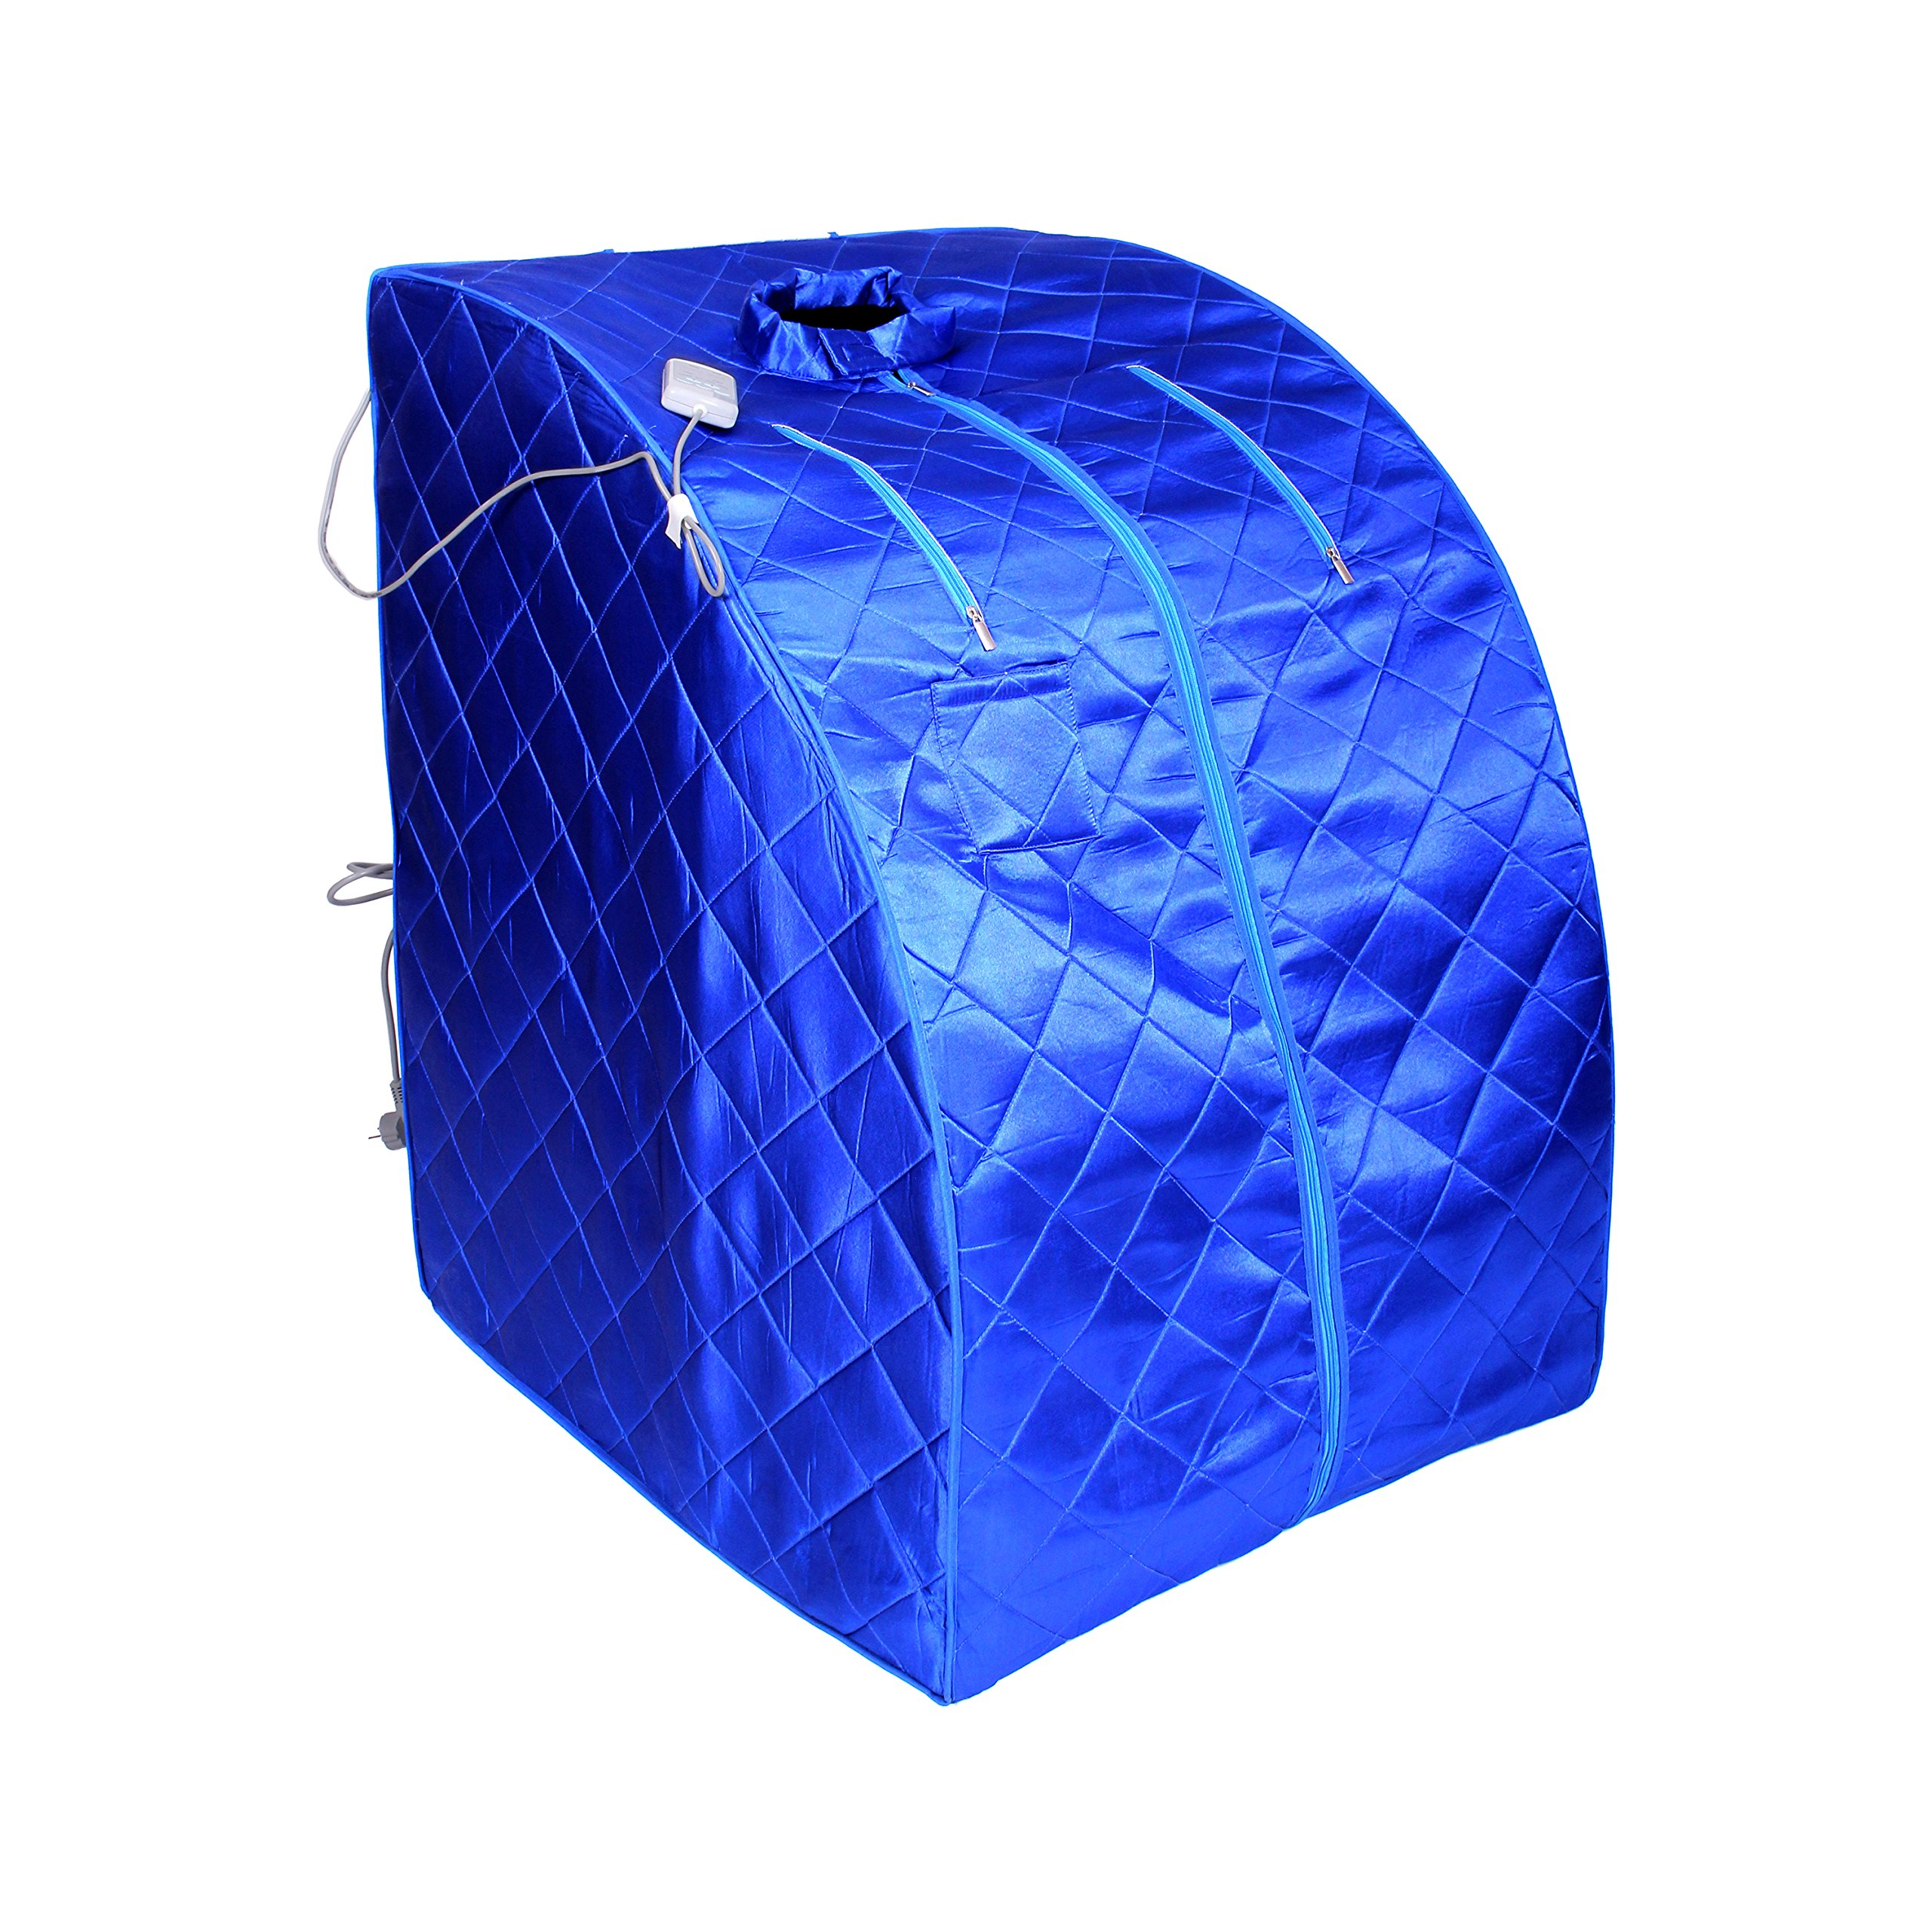 ALEKO PIN11BL Personal Folding Portable Home Infrared Sauna w/ Folding Chair and Foot Pad, Blue